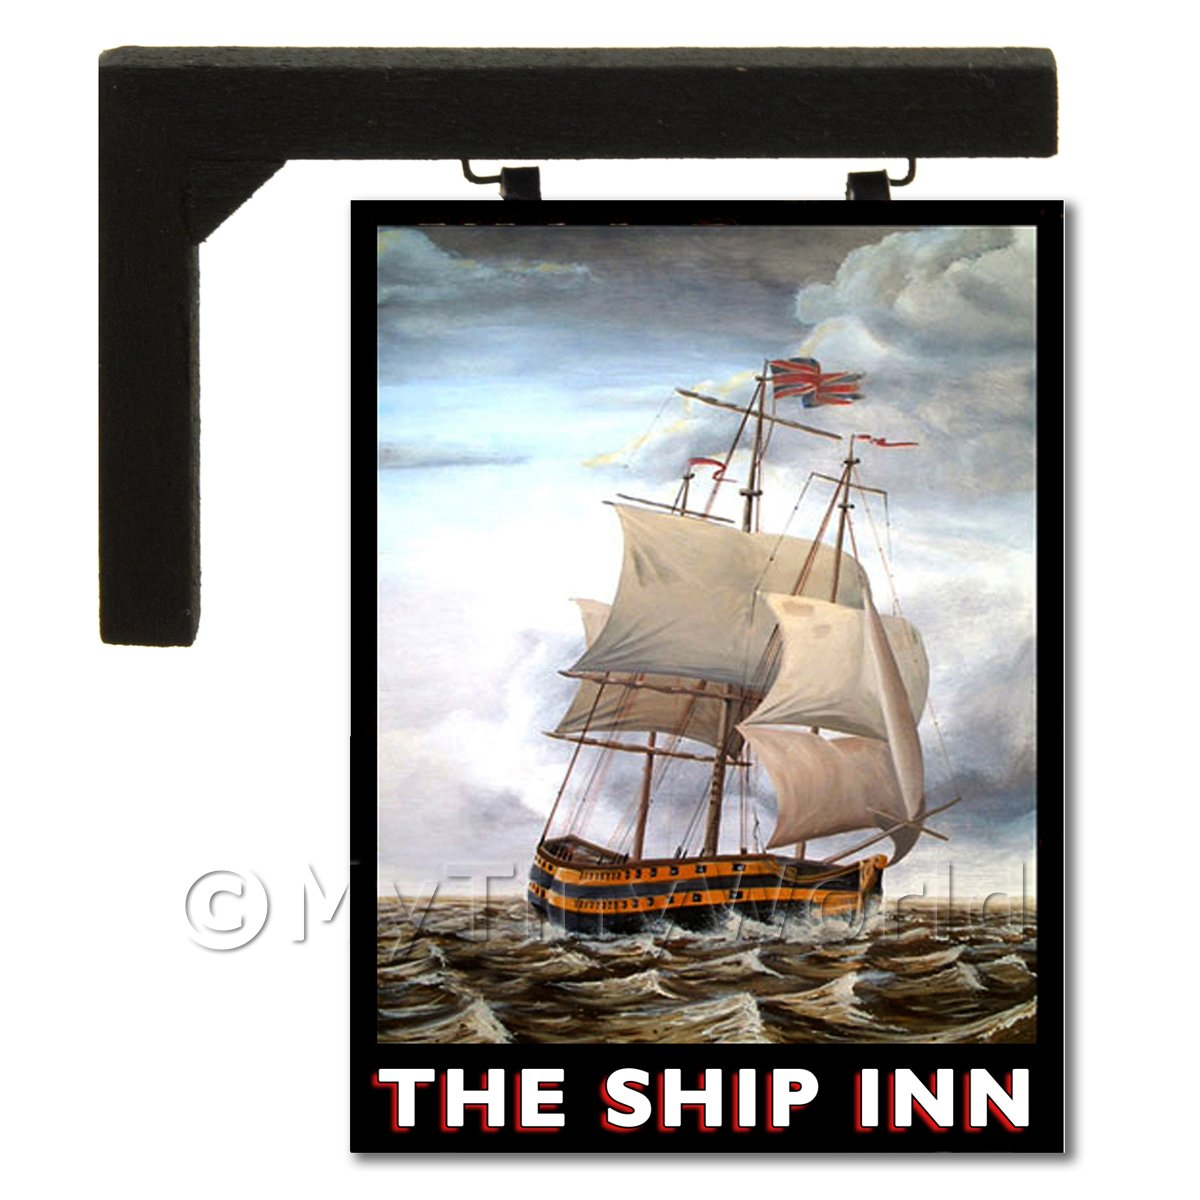 Wall Mounted Dolls House Pub / Tavern Sign - The Ship Inn